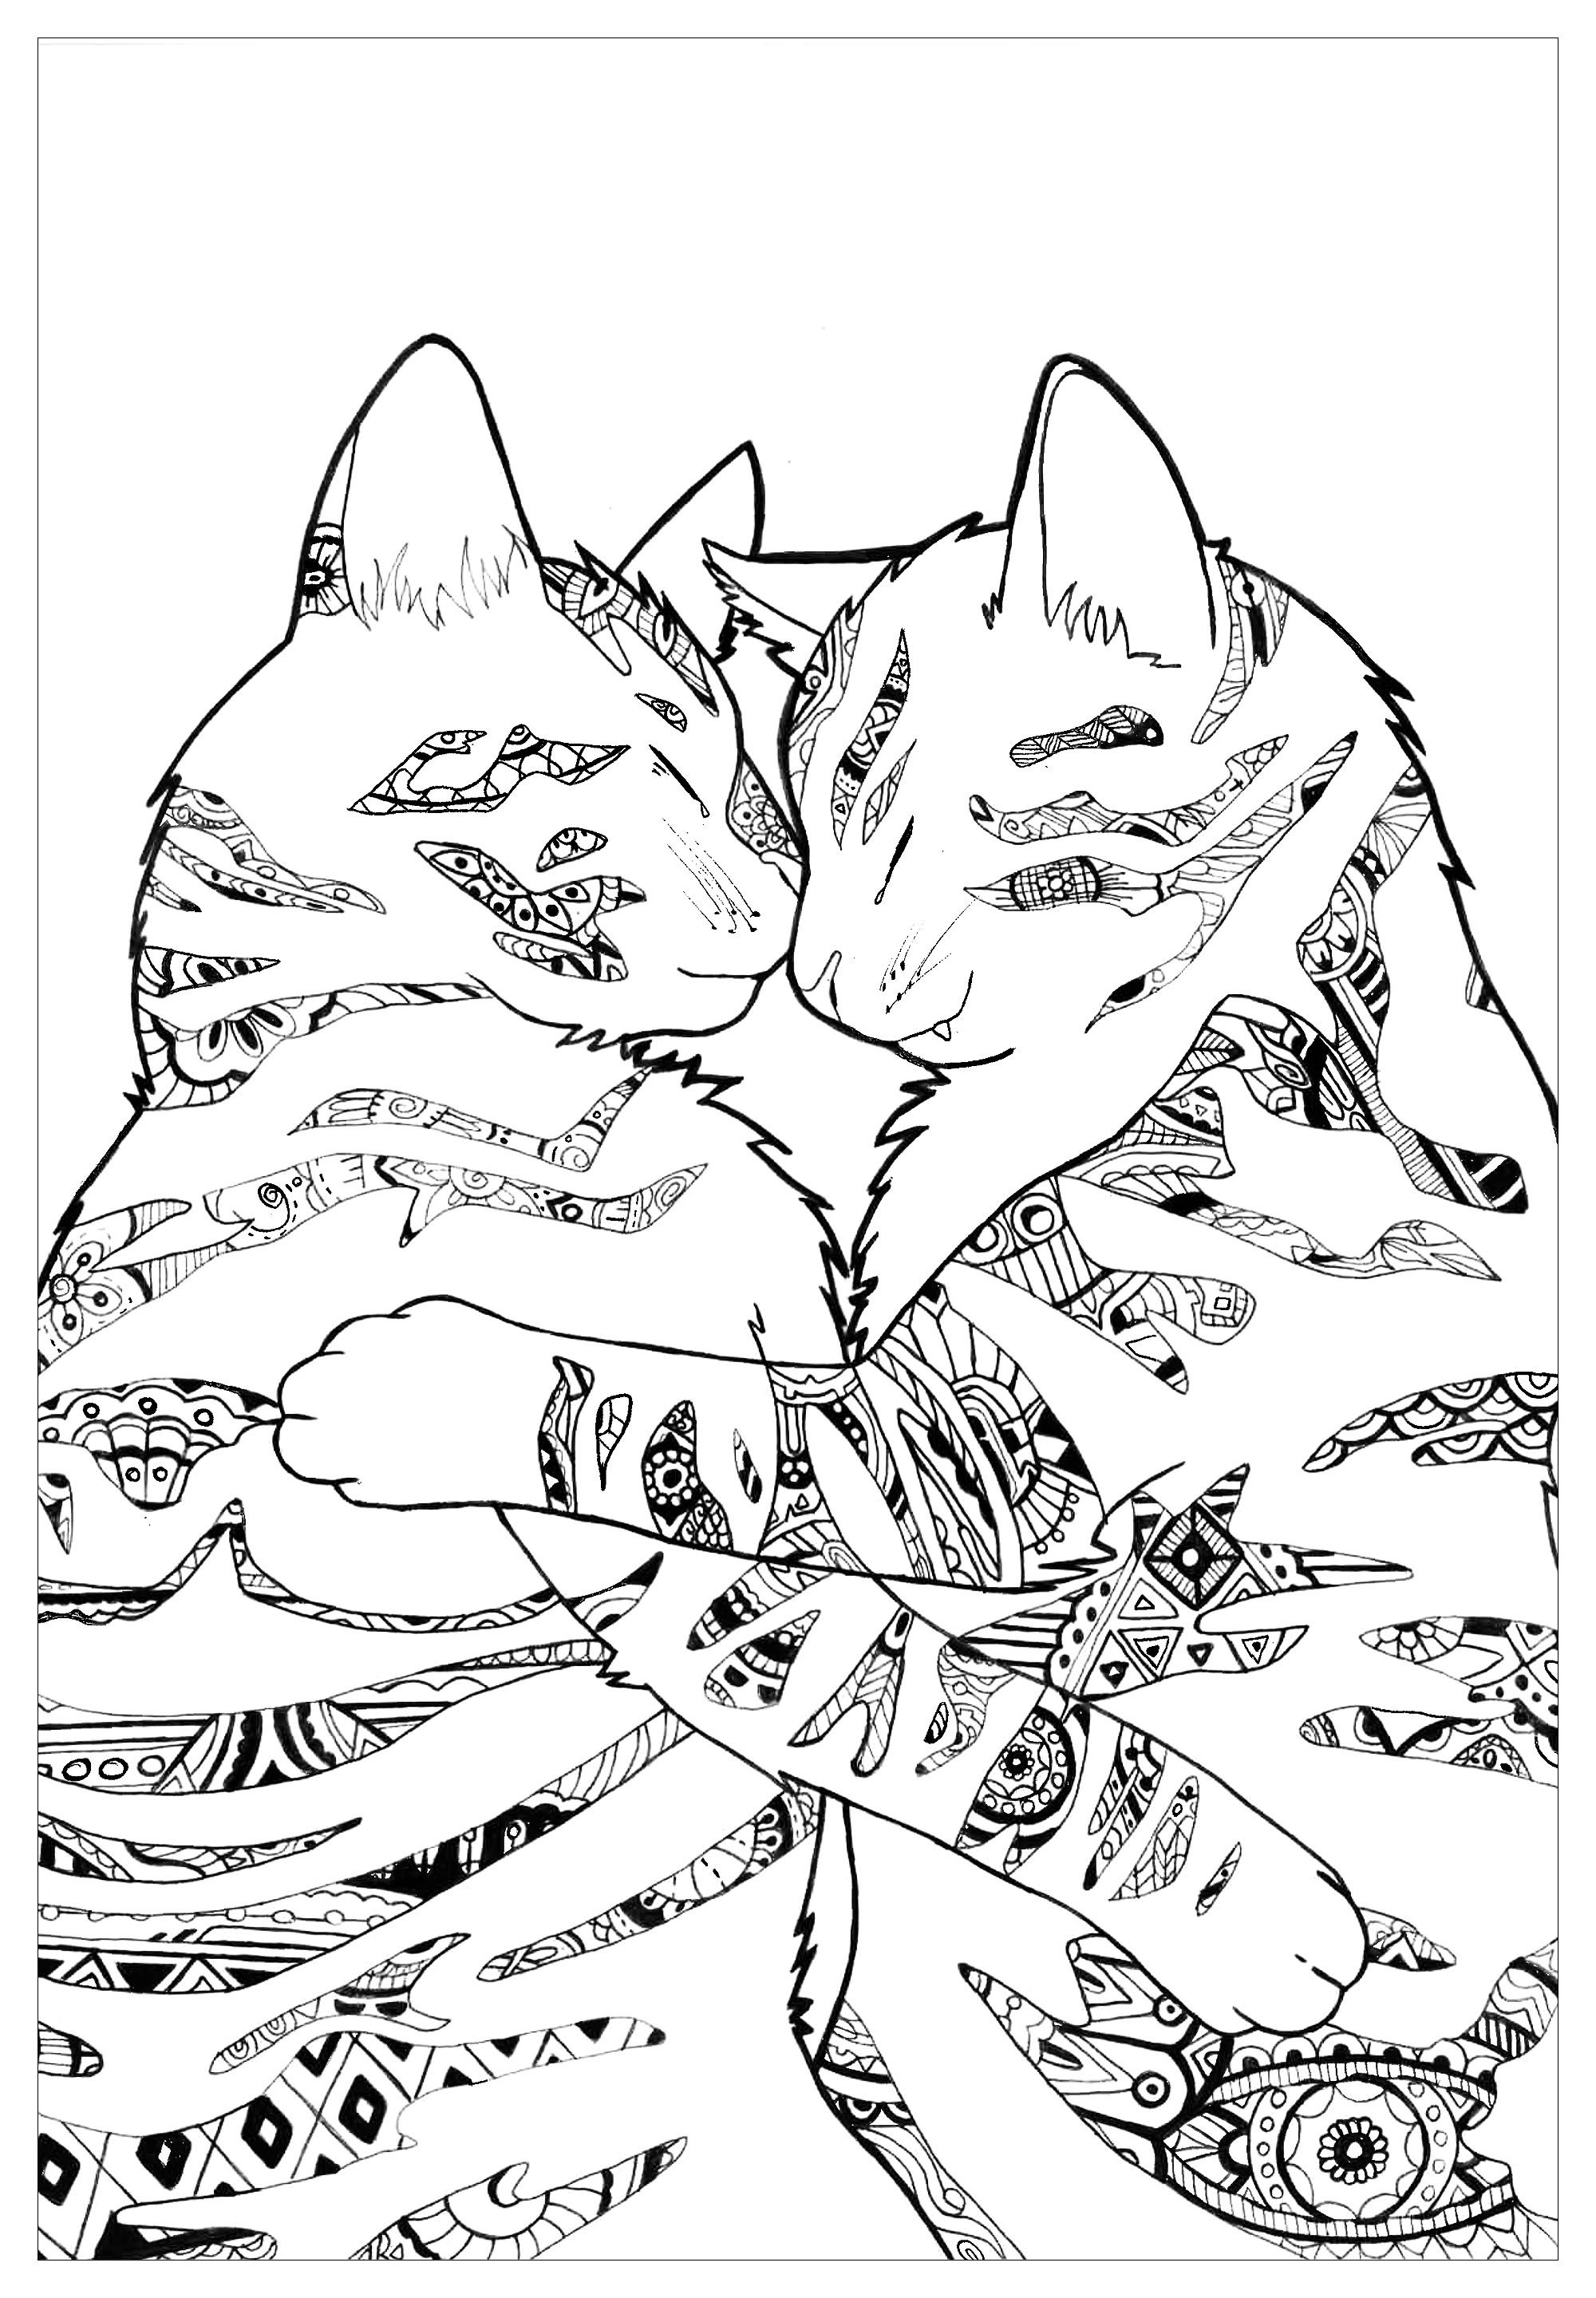 Here Are Complex Coloring Pages For Adults Of Animals Different Levels Of Details And Styles Are Ava Animal Coloring Pages Dog Coloring Page Cat Coloring Page [ jpg ]